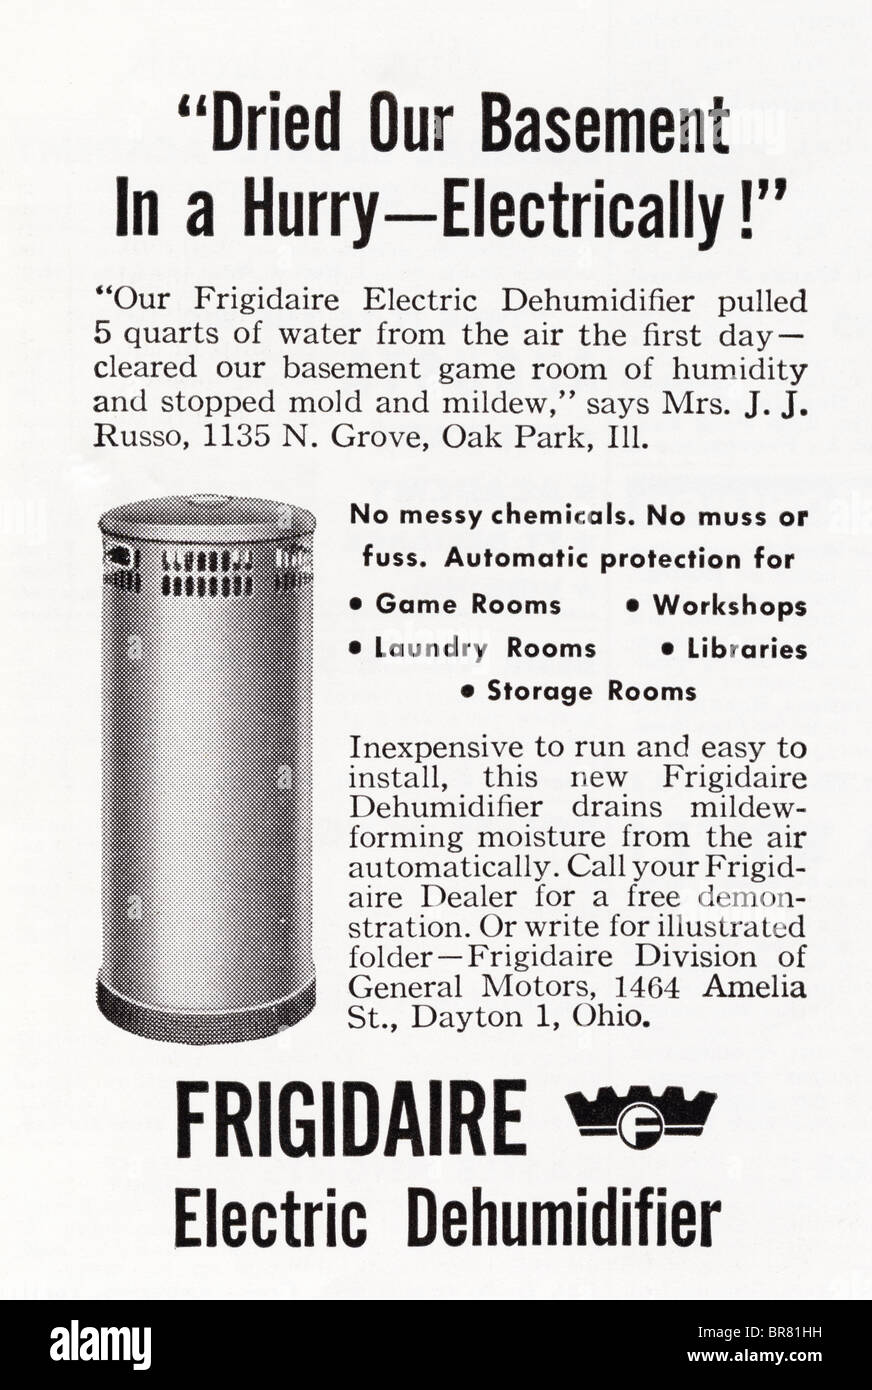 Black and white American magazine advert for Frigidaire Electric Dehumidifier circa 1950 - Stock Image